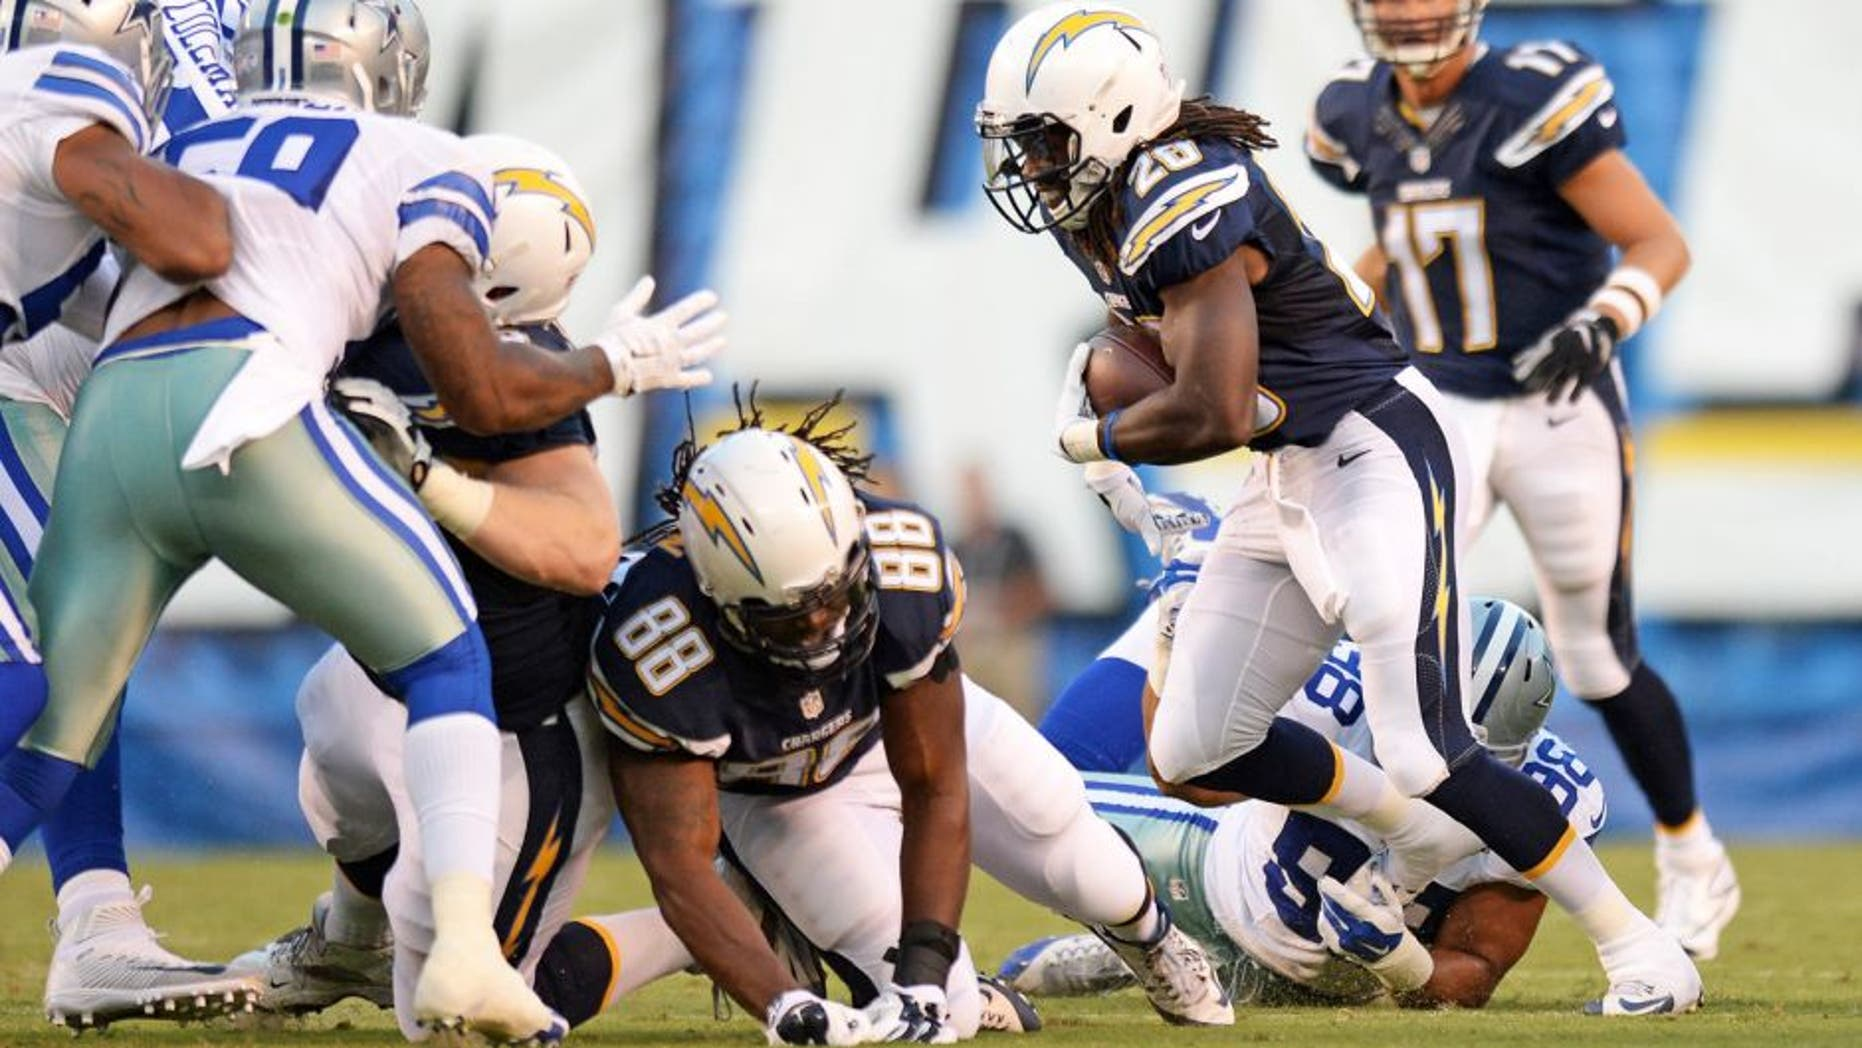 Aug 13, 2015; San Diego, CA, USA; San Diego Chargers running back Melvin Gordon (28) runs against the Dallas Cowboys during the first quarter in a preseason NFL football game at Qualcomm Stadium. Mandatory Credit: Jake Roth-USA TODAY Sports